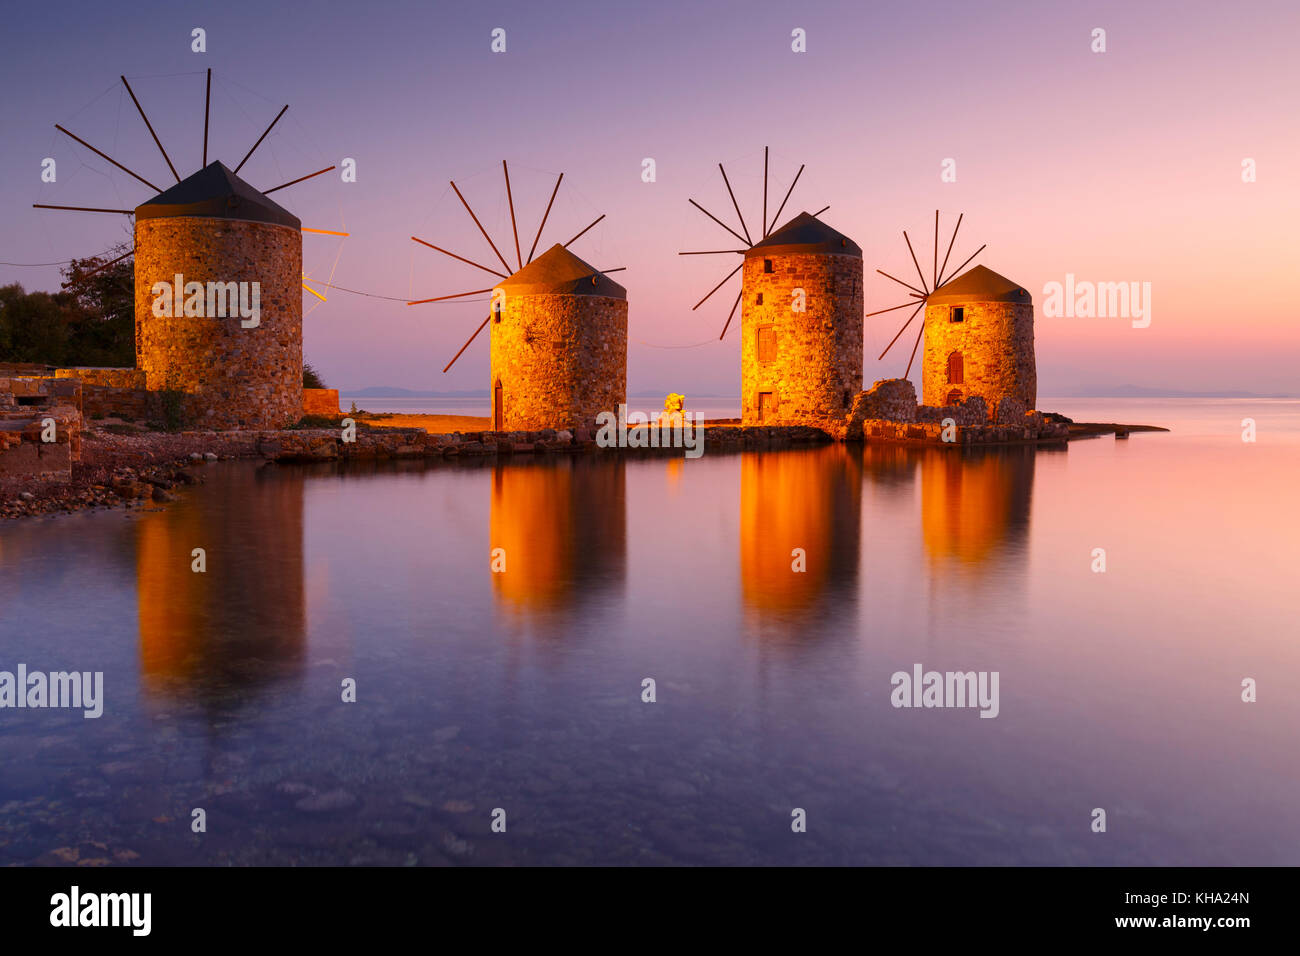 Sunrise image of the iconic windmills in Chios town. - Stock Image